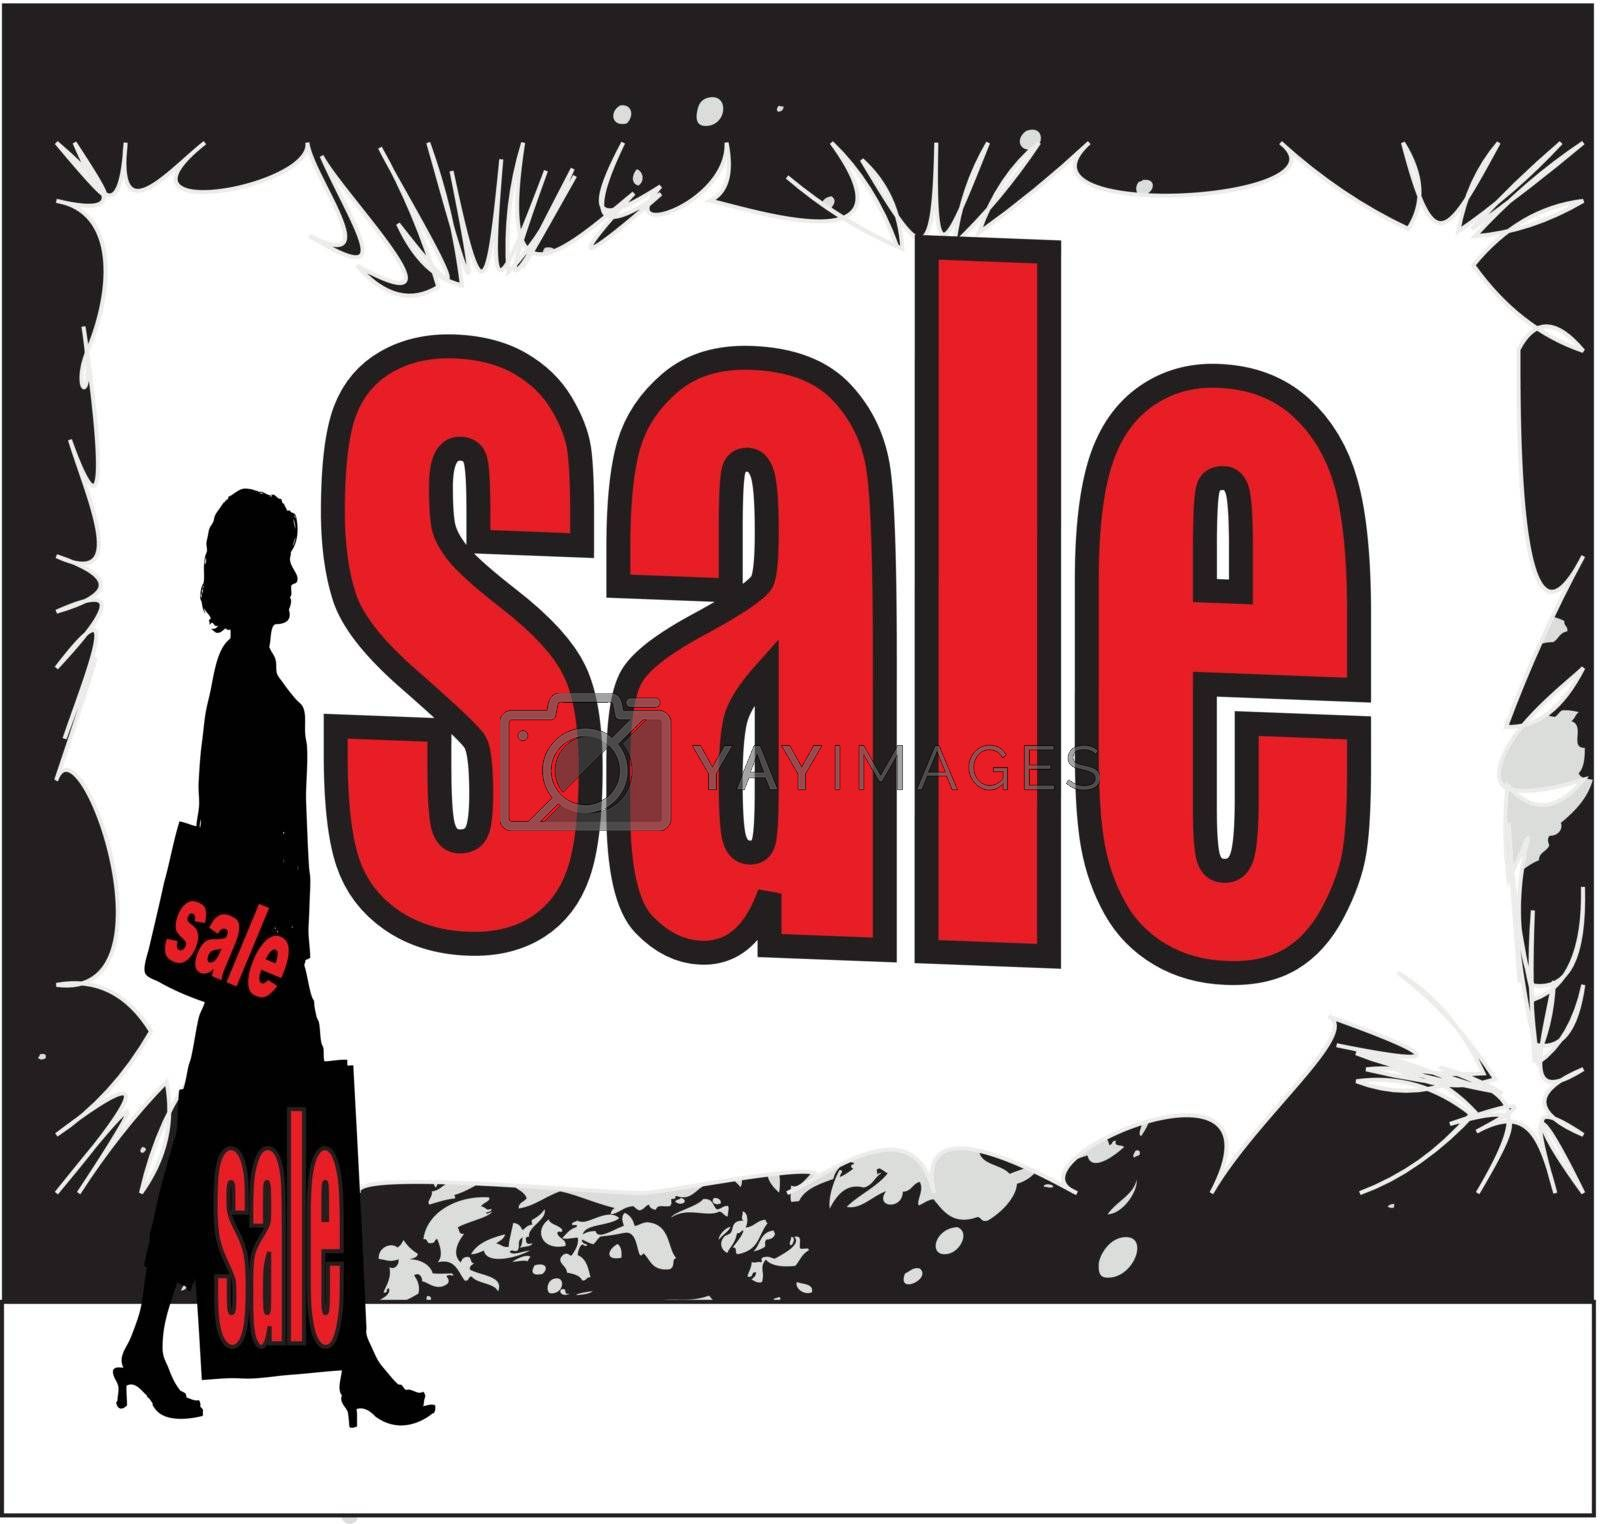 sale by redfig